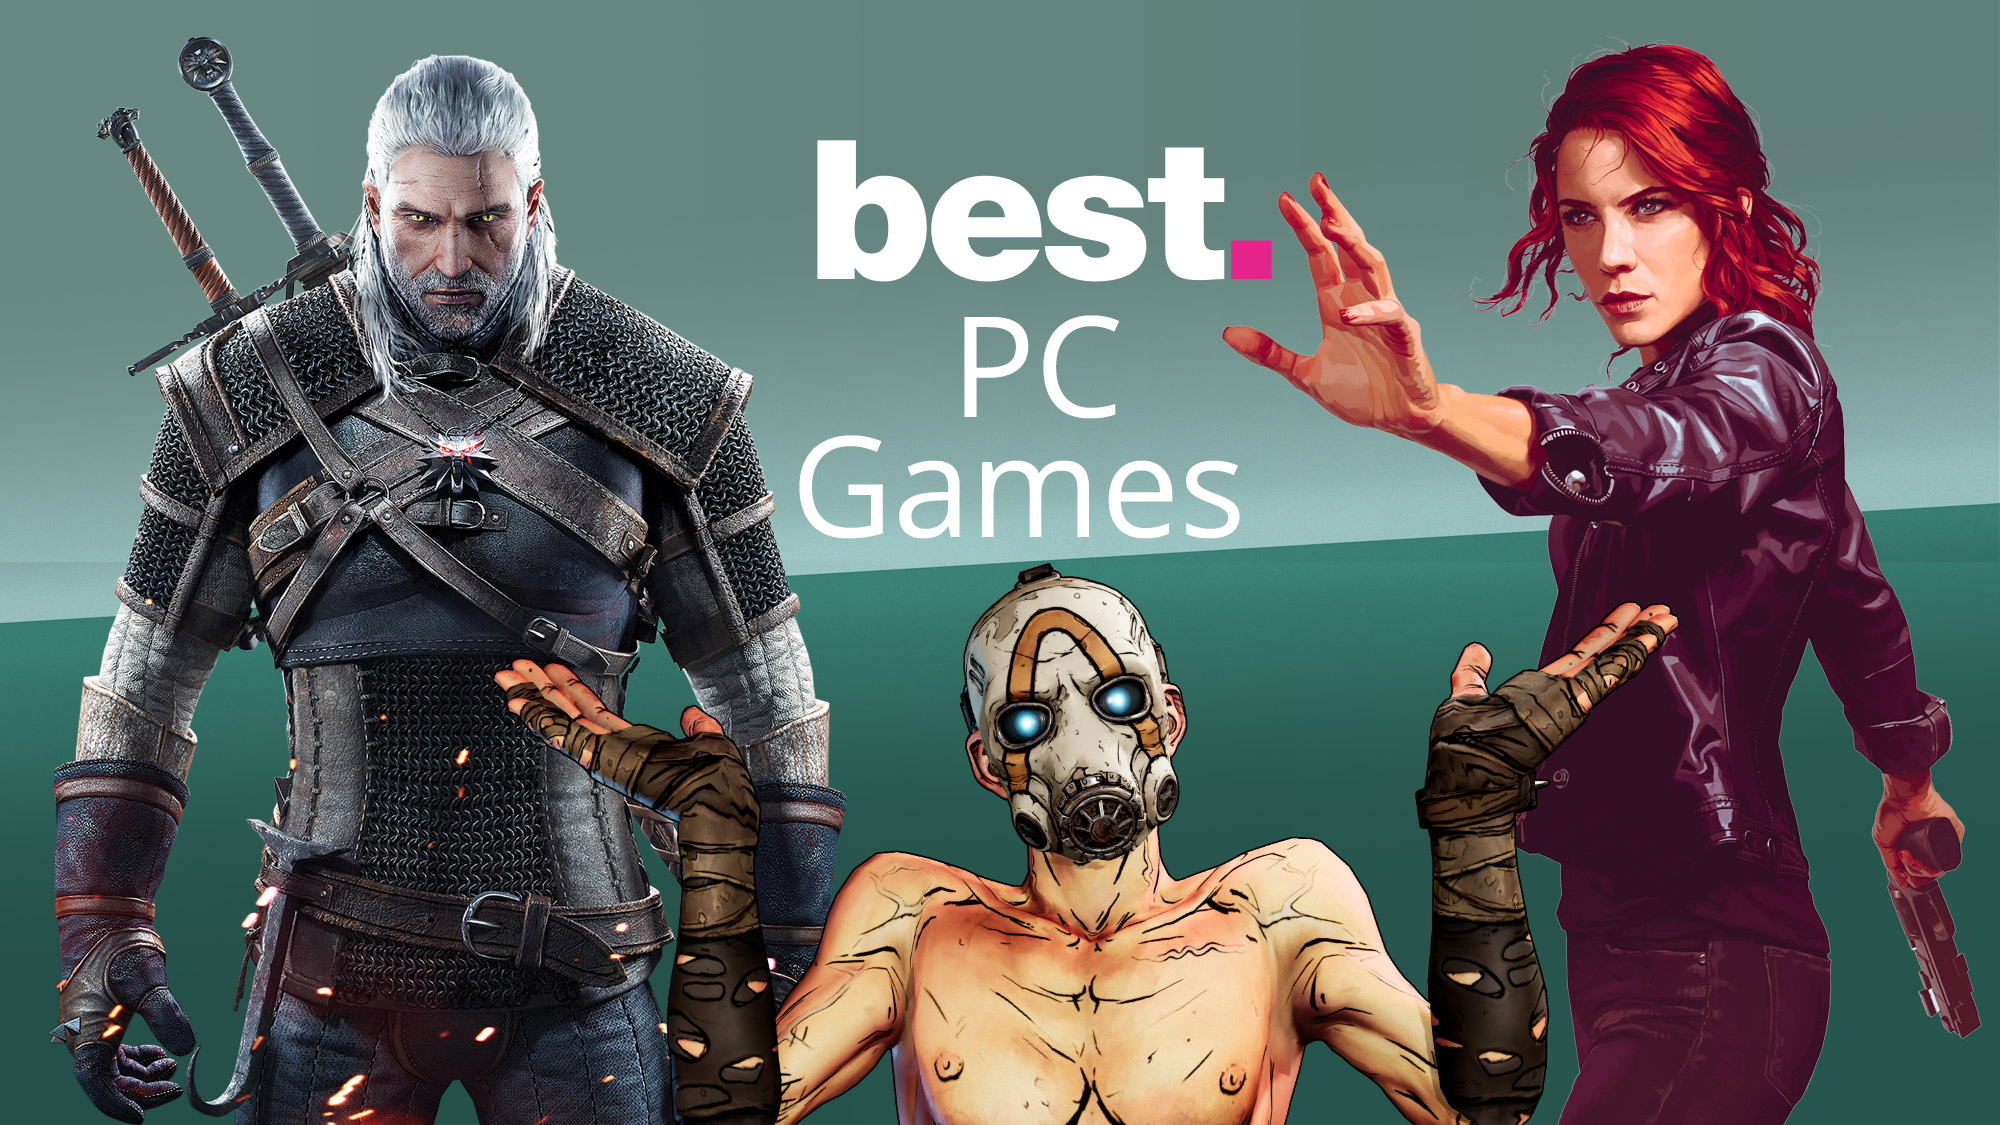 Best PC games 2021: the must-play titles you don't want to miss